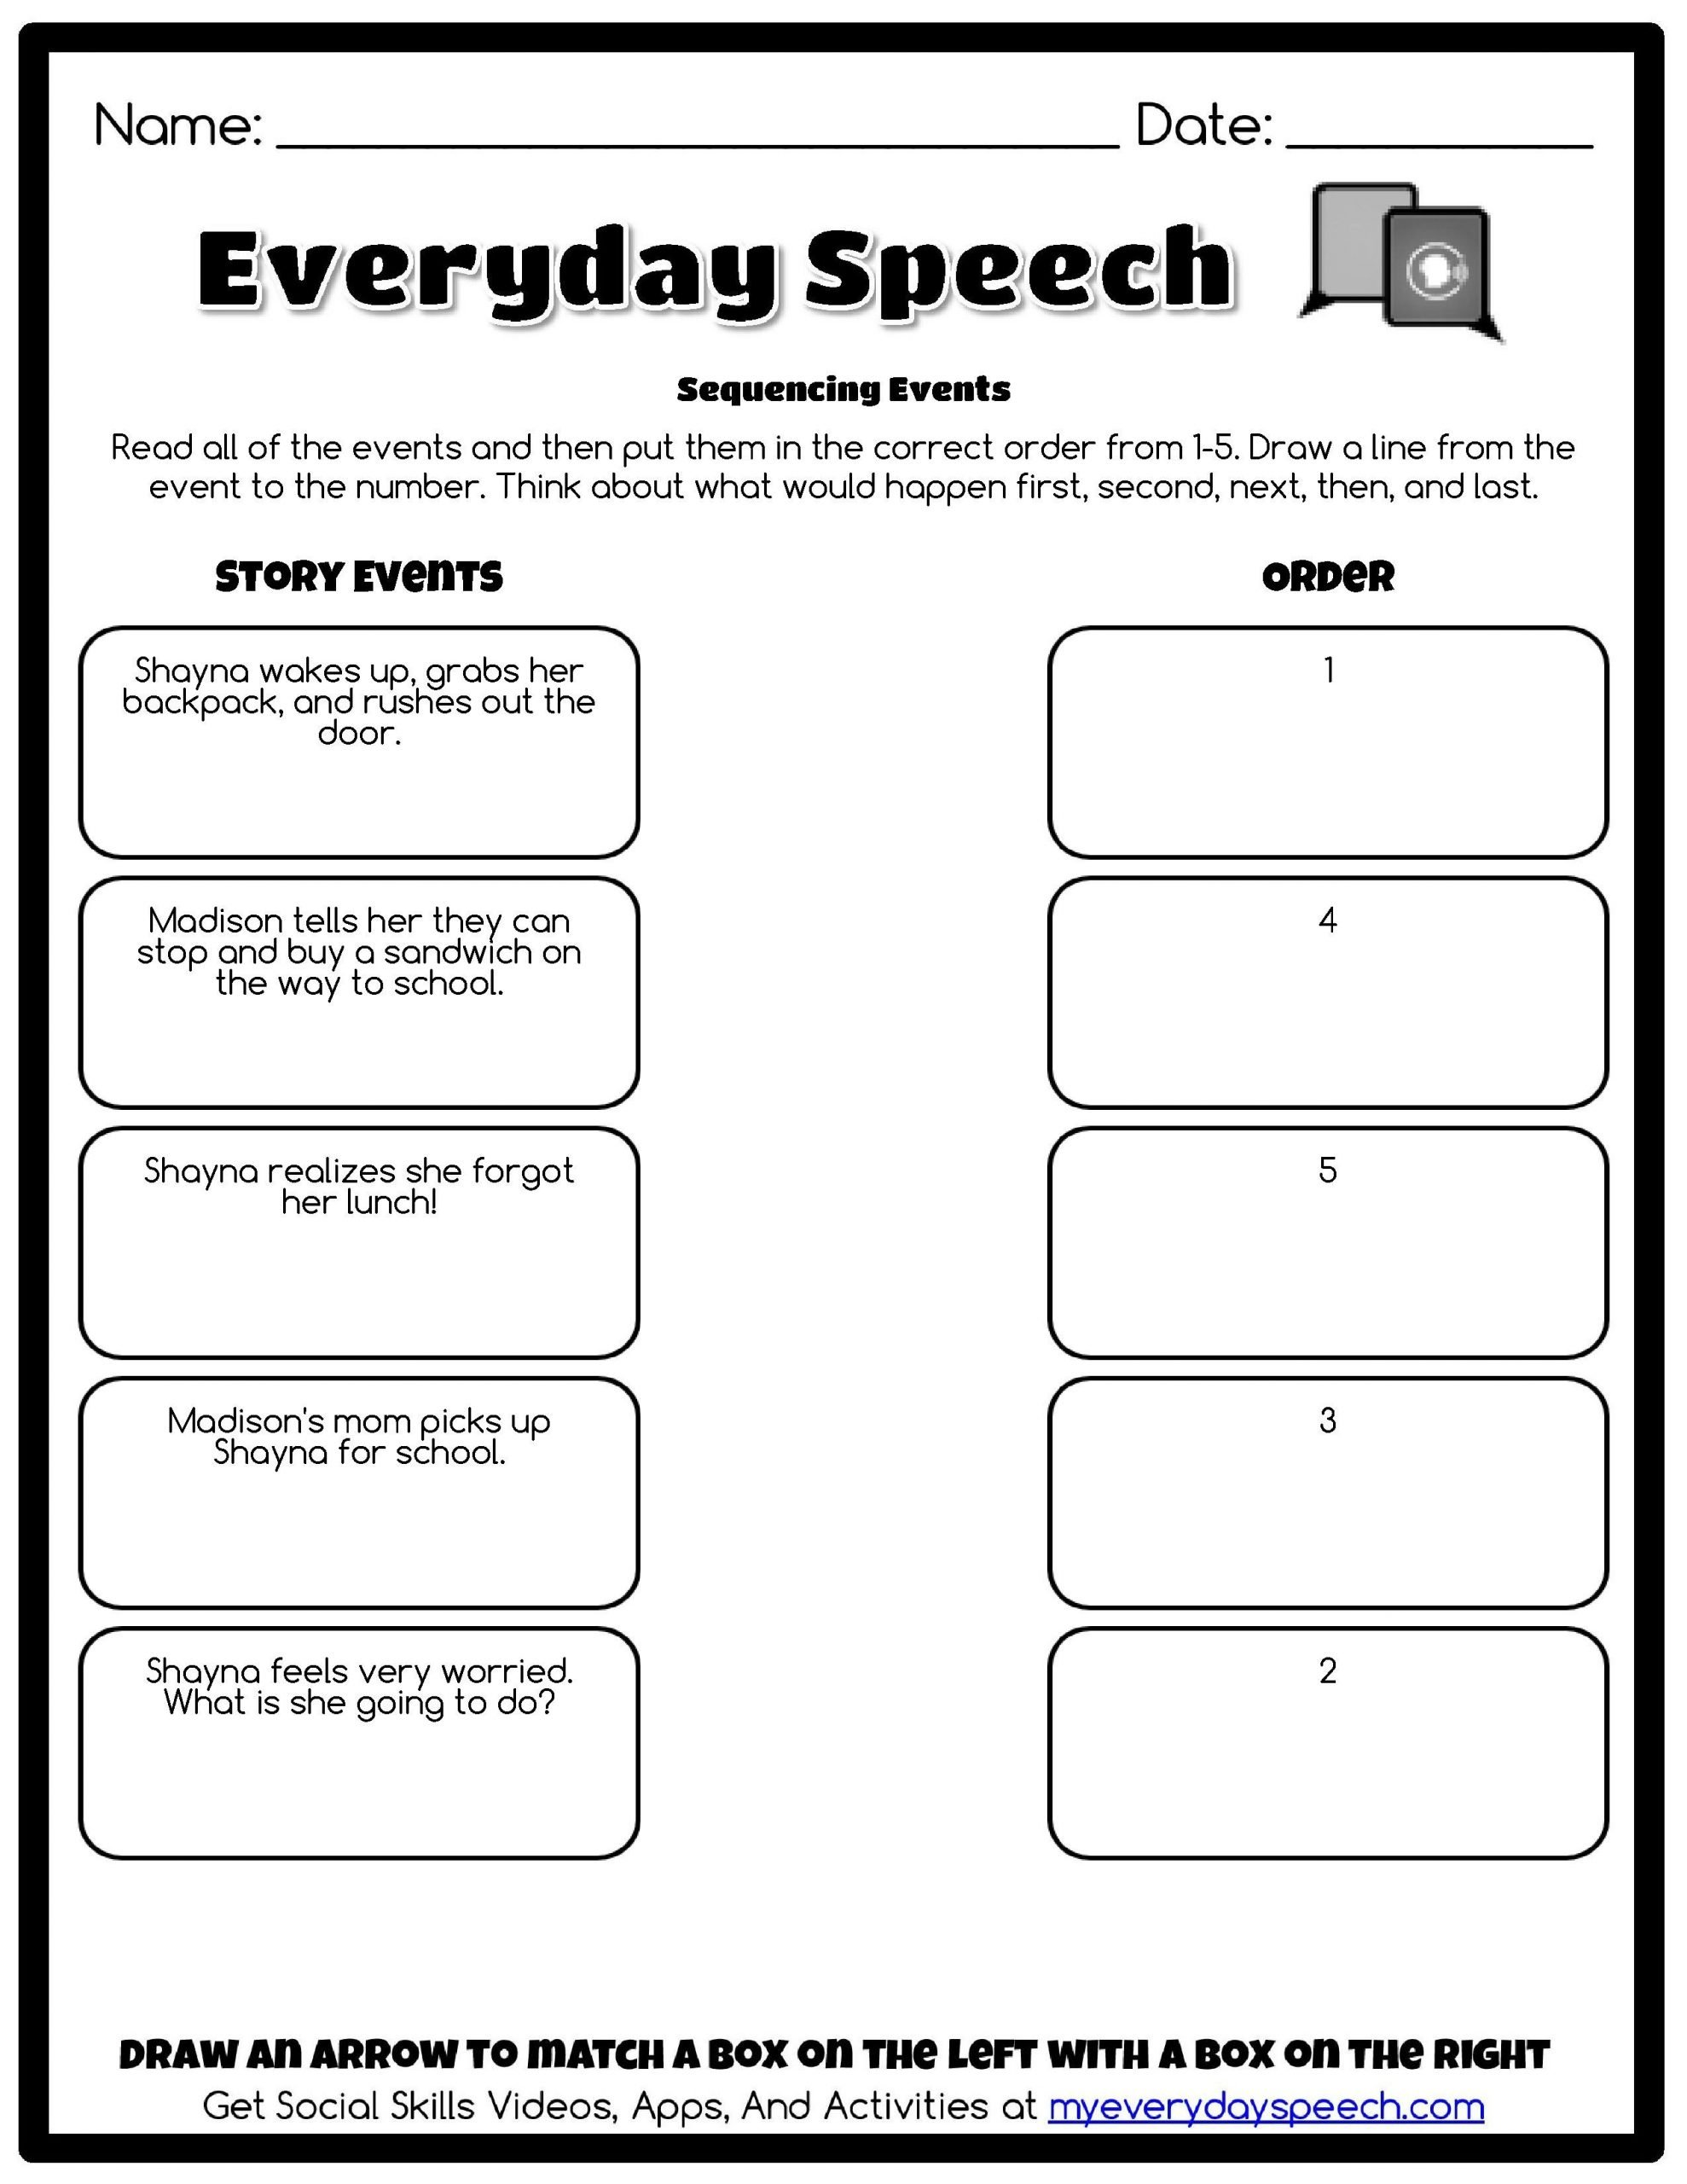 Social Skills Worksheets for Children Sequencing events Everyday Speech